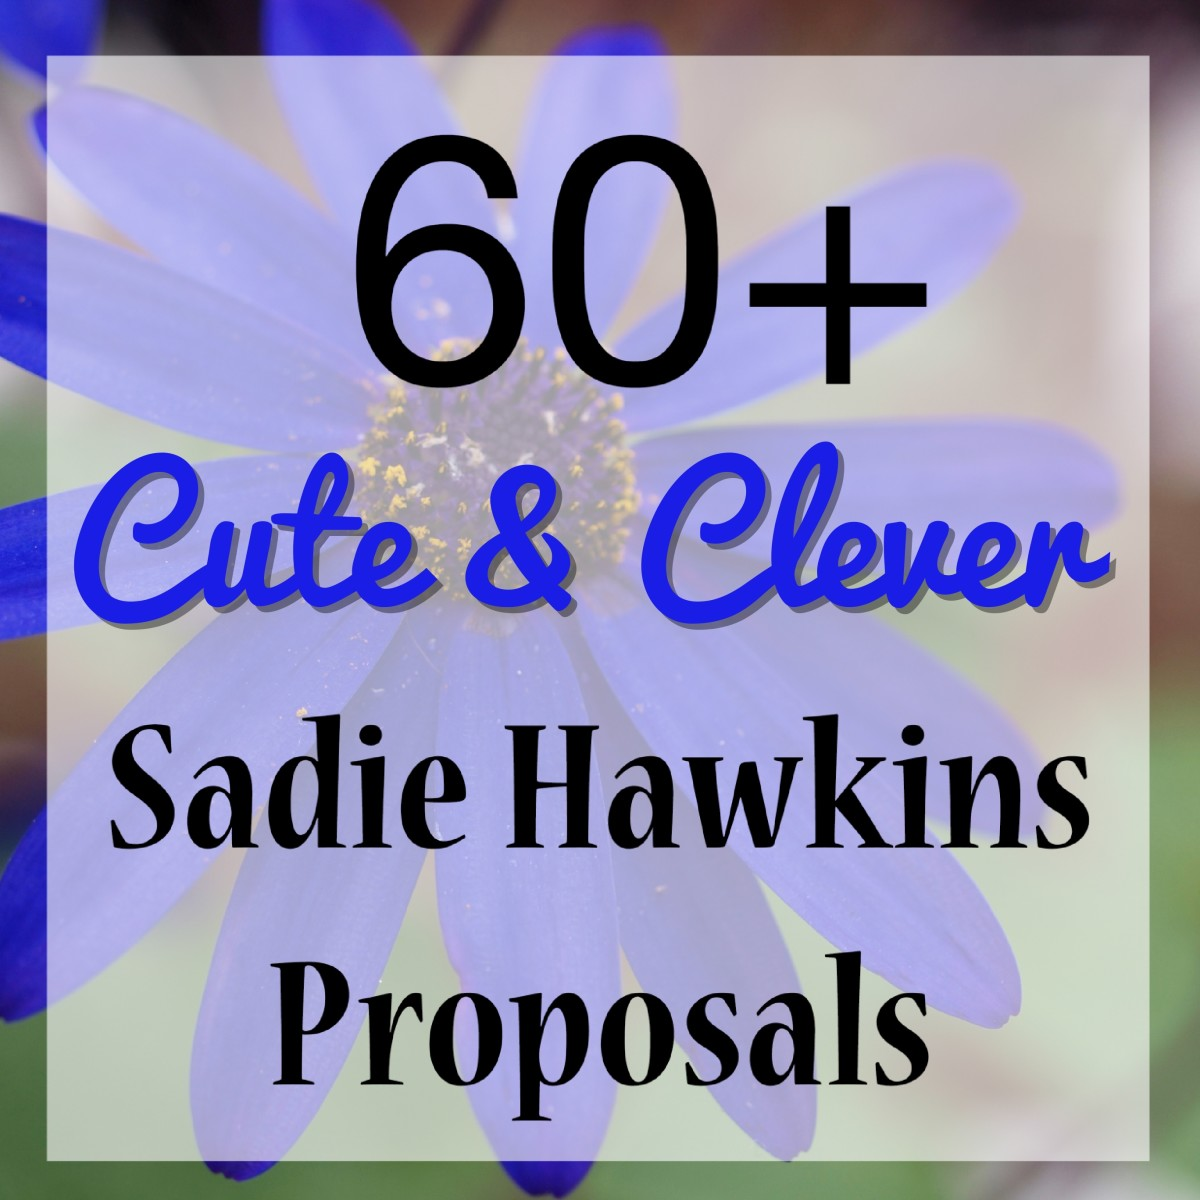 60+ Awesome and Easy Sadie Hawkins Dance Proposals